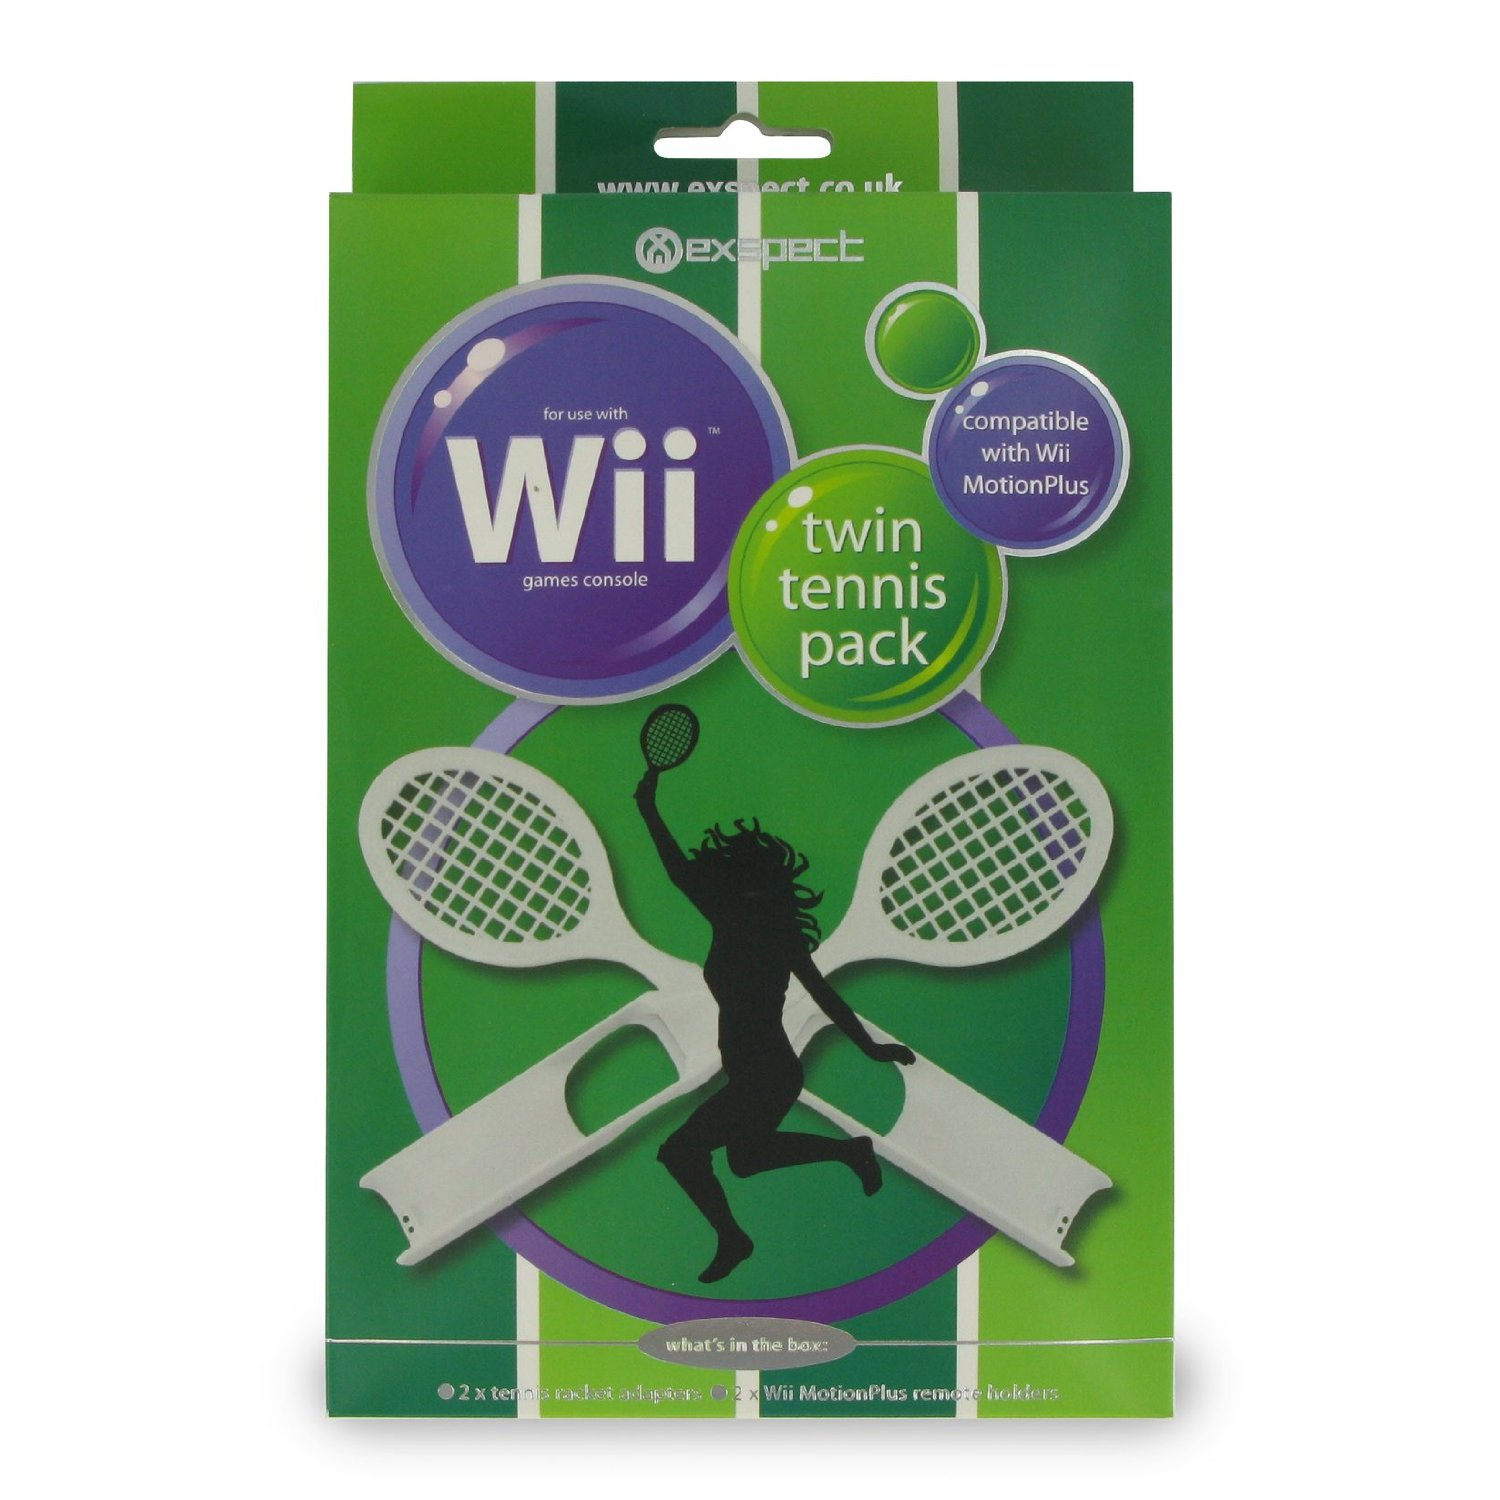 Exspect Wii MotionPlus Twin Tennis Pack